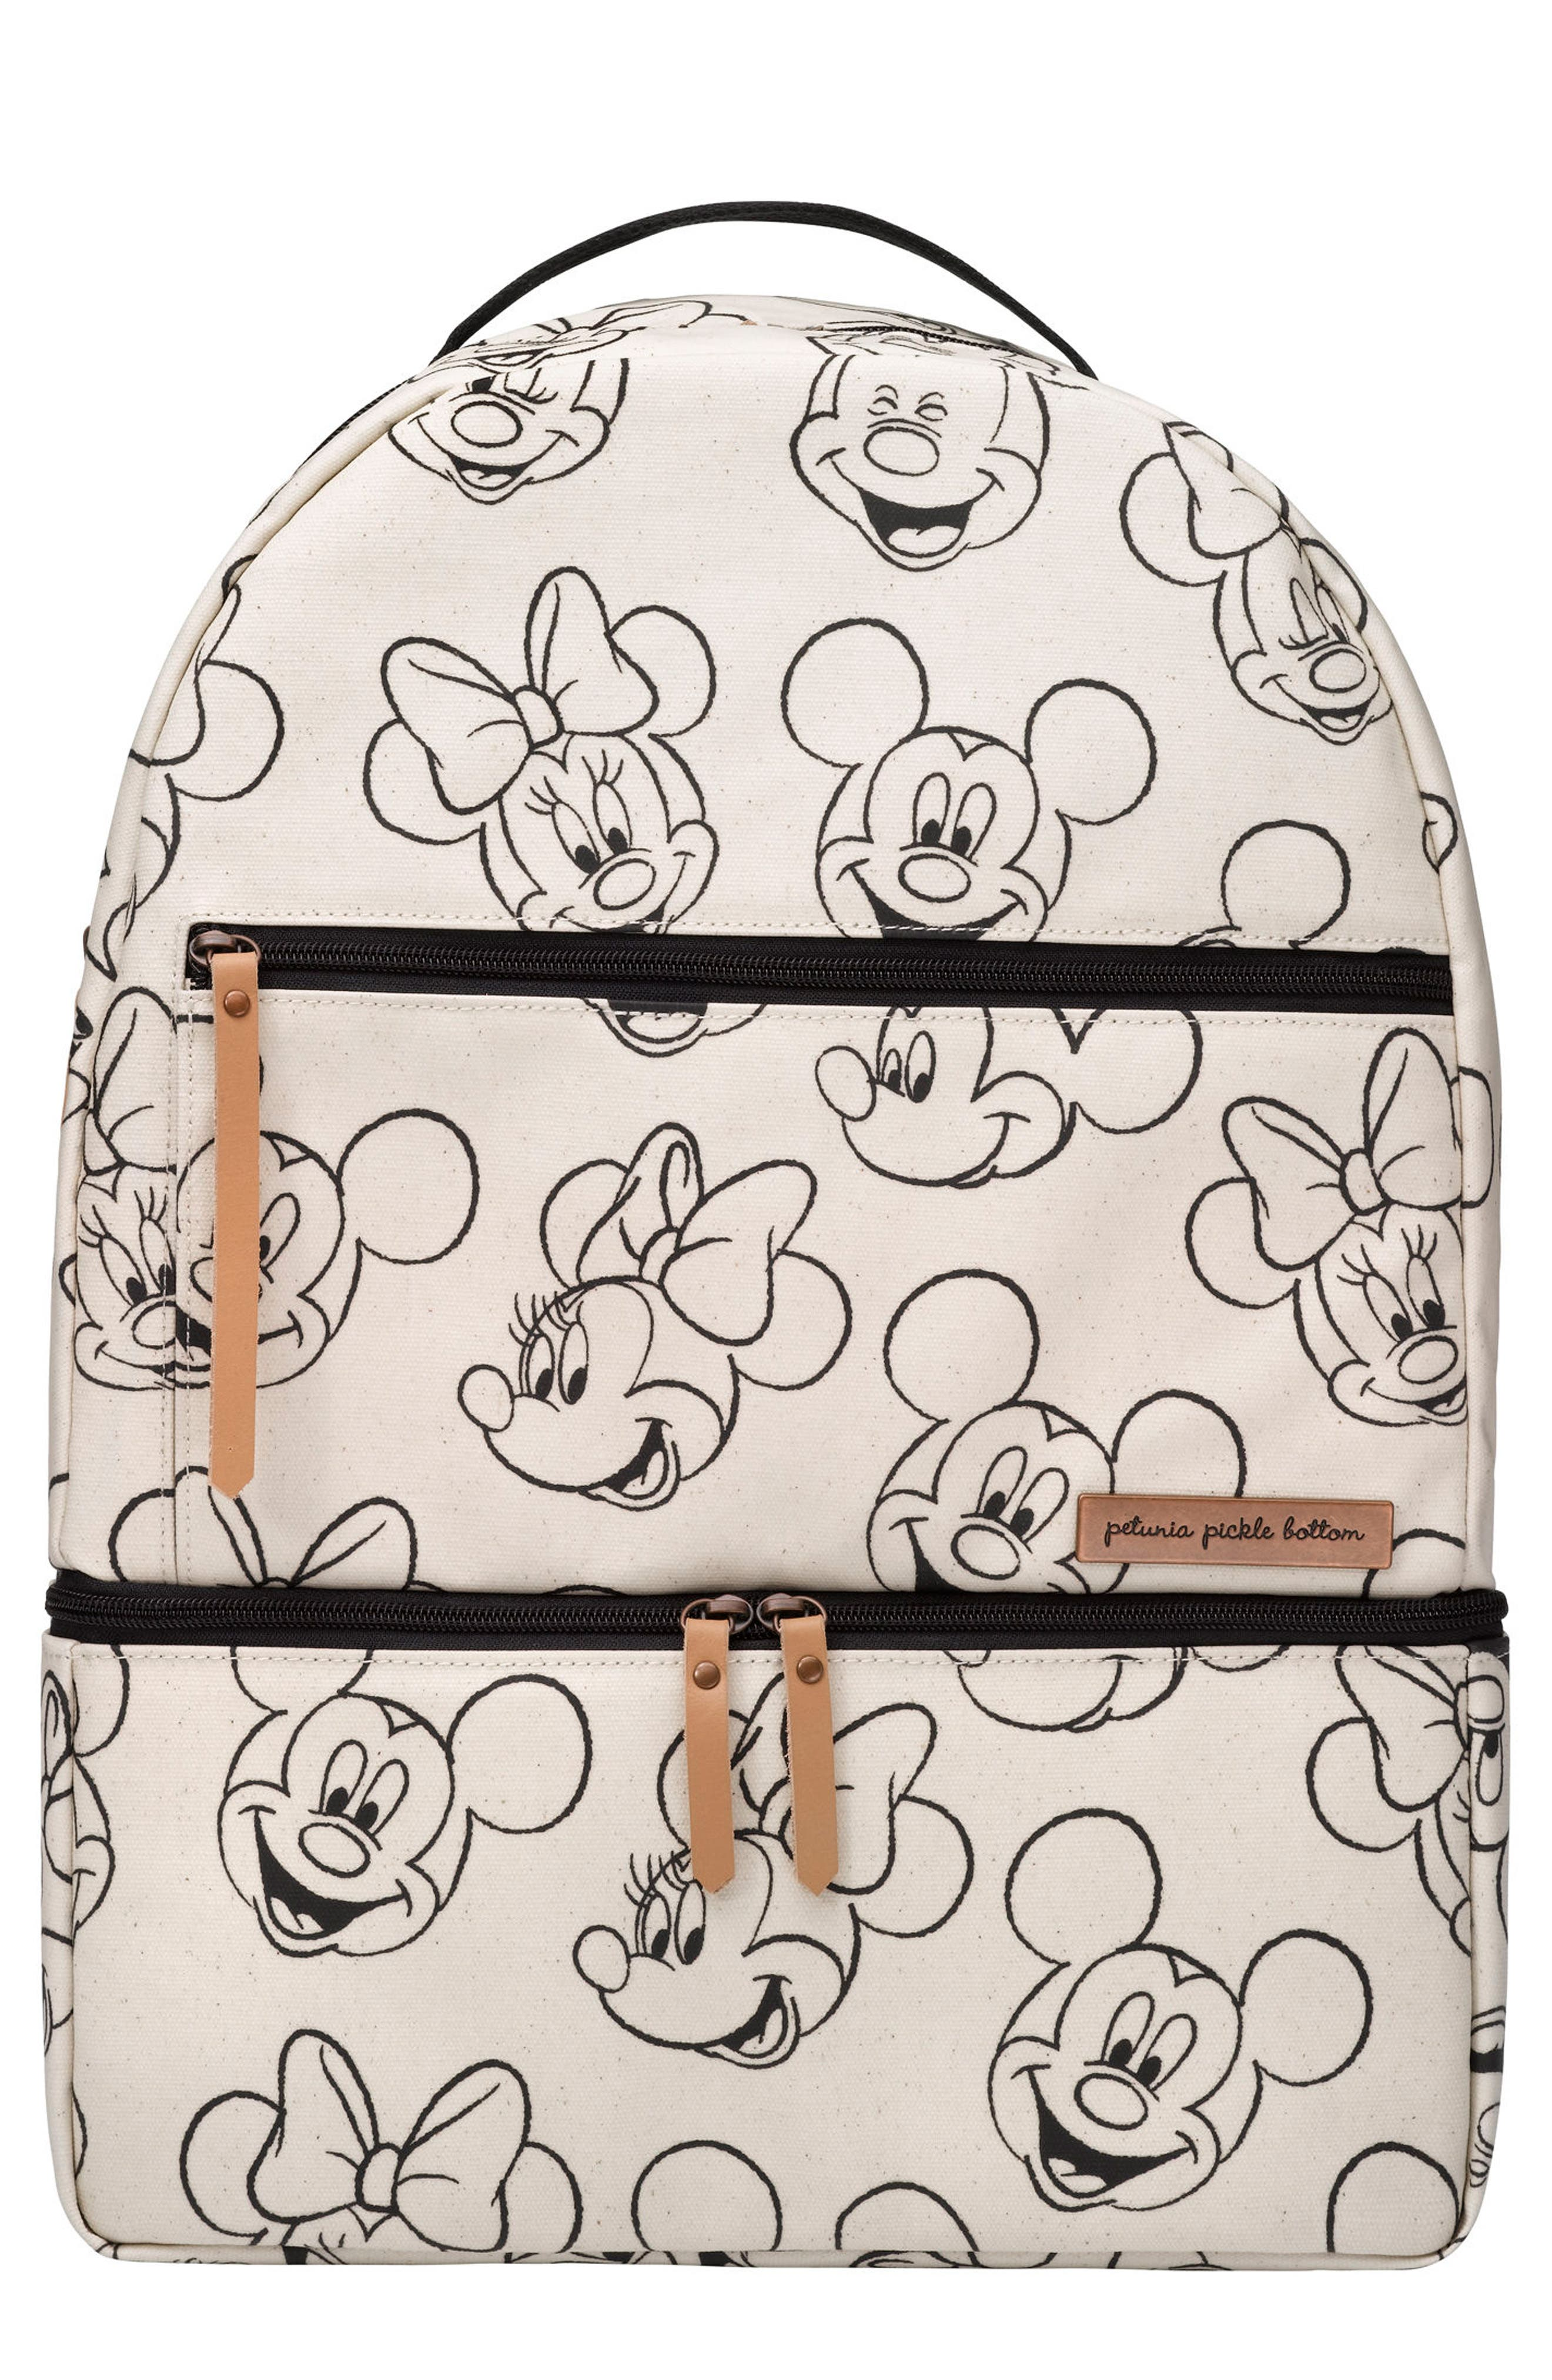 x Disney<sup>®</sup> Axis Backpack,                             Main thumbnail 1, color,                             SKETCHBOOK MICKEY AND MINNIE